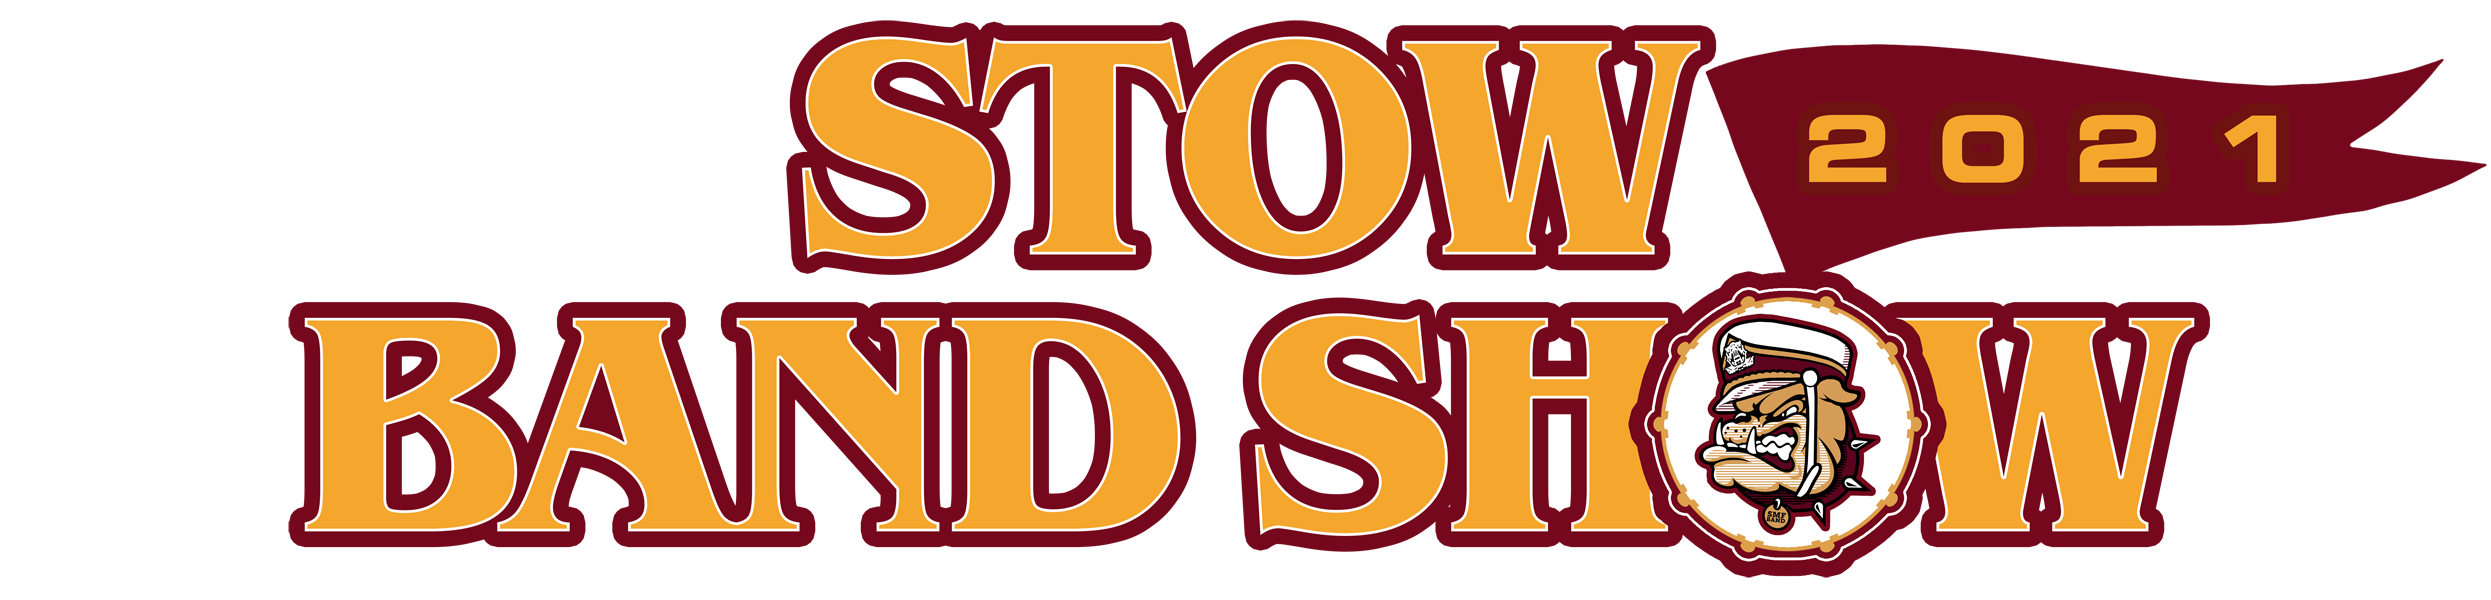 2021 Stow Band Show